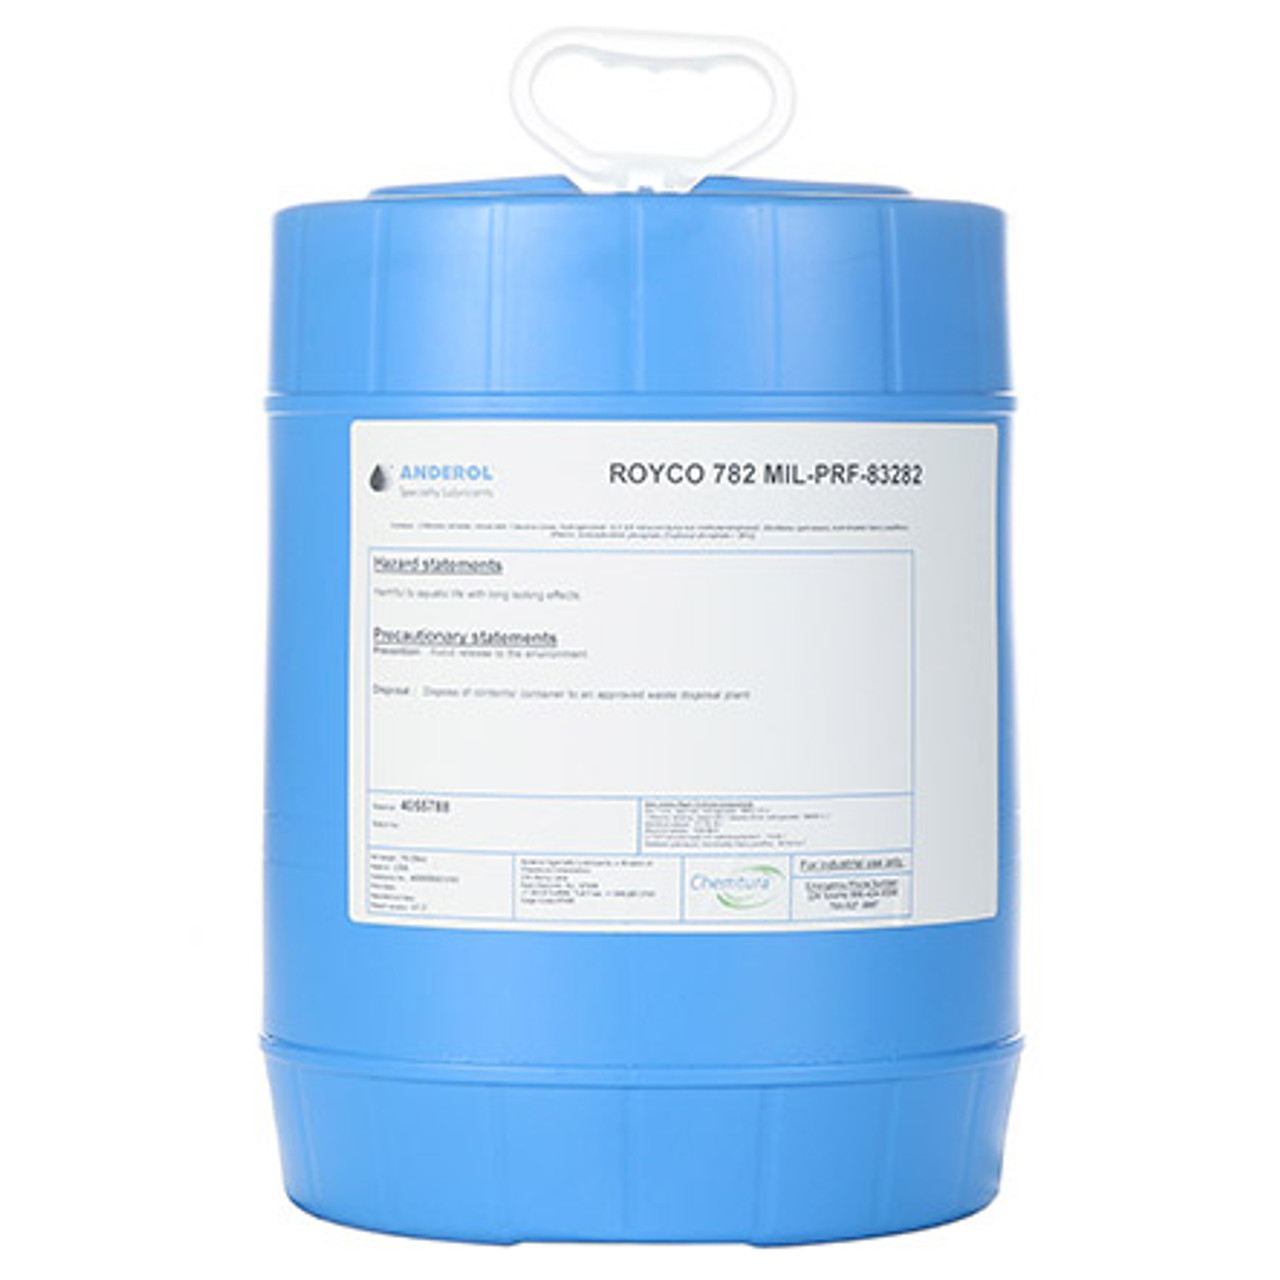 "ROYCO® 782 Red MIL-PRF-83282D Spec Synthetic Fire Resistant Aircraft Hydraulic Fluid - 5 Gallon Steel Pail - Part#: 4055788by ROYCO®  ROYCO 782 is a red – colored ""Super Clean"", synthetic hydraulic fluid developed to meet the severe duty demands of today's military and industrial equipment. Modern additive technology is employed for oxidative stability, corrosion inhibition, and antiwear protection. ROYCO 782 is compatible with petroleum-based fluids and all components used in mineral oil type hydraulic systems. ROYCO 782 is intended for use in severe duty applications requiring both low and high temperature operation, extended time periods between service intervals, excellent shear stability, water demulsibility, and the safety factor afforded by the use of a synthetic fluid. ROYCO 782 is recommended for use in aircraft, missile, and ordnance systems using synthetic sealing materials as well as in heavy-duty construction equipment, and industrial robotic hydraulic systems. ROYCO 782 is suitable for use in applications operating at temperatures from -40°C to 205°C. This product is especially recommended for use where the high flash point provides added safety margins.  Approvals/References/Specs  NATO Specification: H-537 US Military Specification: MIL-PRF-83282D Amend 1 US Military Specification: MIL-H-83282"